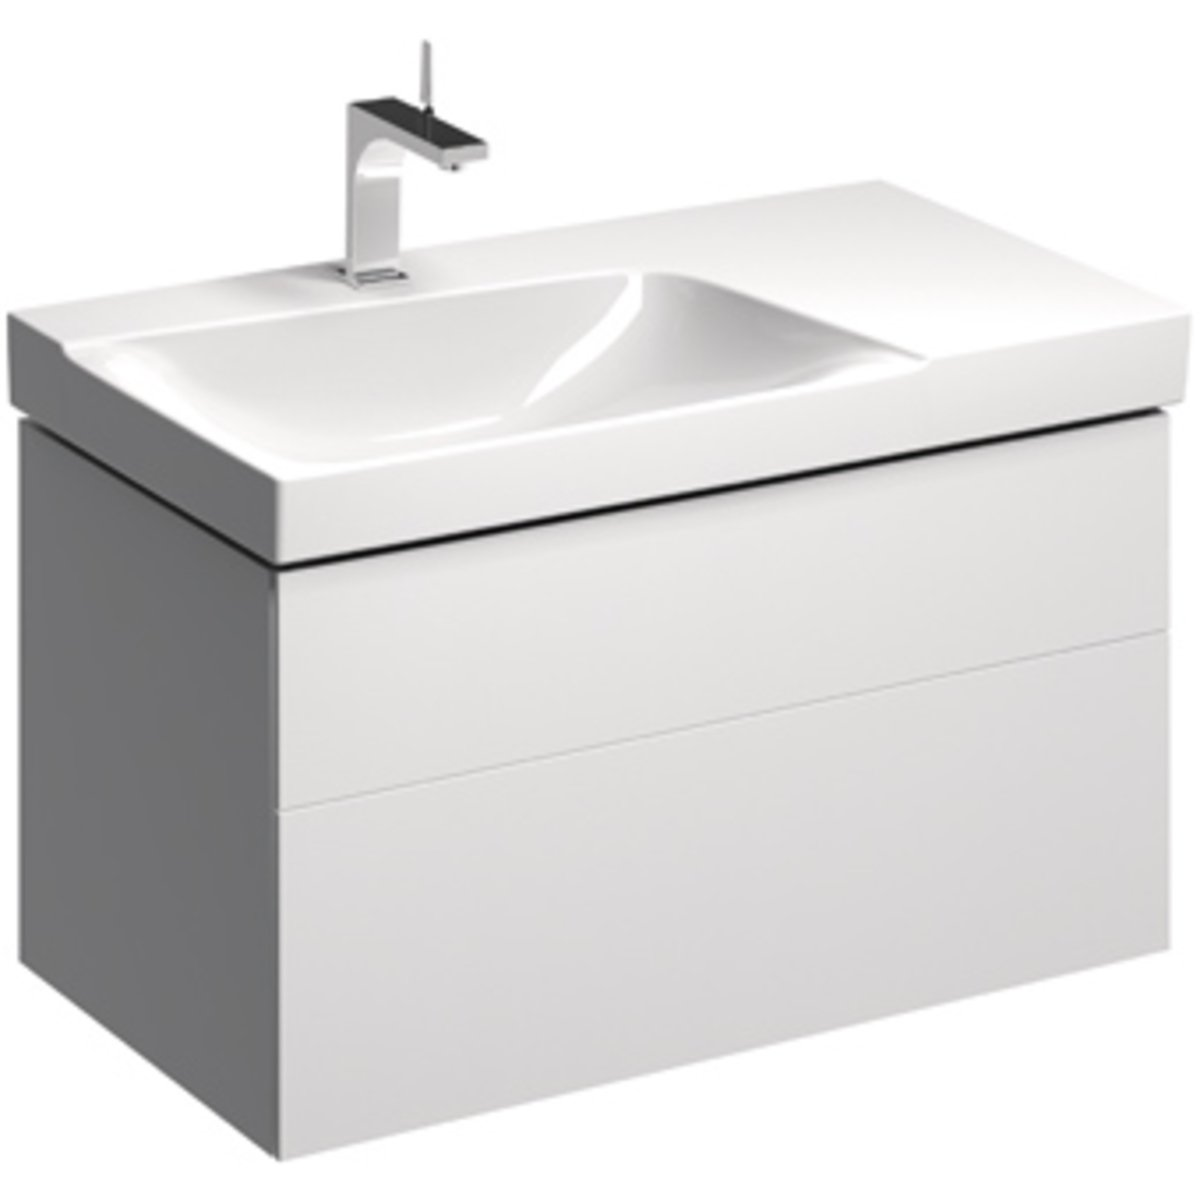 sphinx serie 420 new meuble lavabo pour lavabo gauche 90cm avec 2 tiroirs blanc s8m13083000. Black Bedroom Furniture Sets. Home Design Ideas